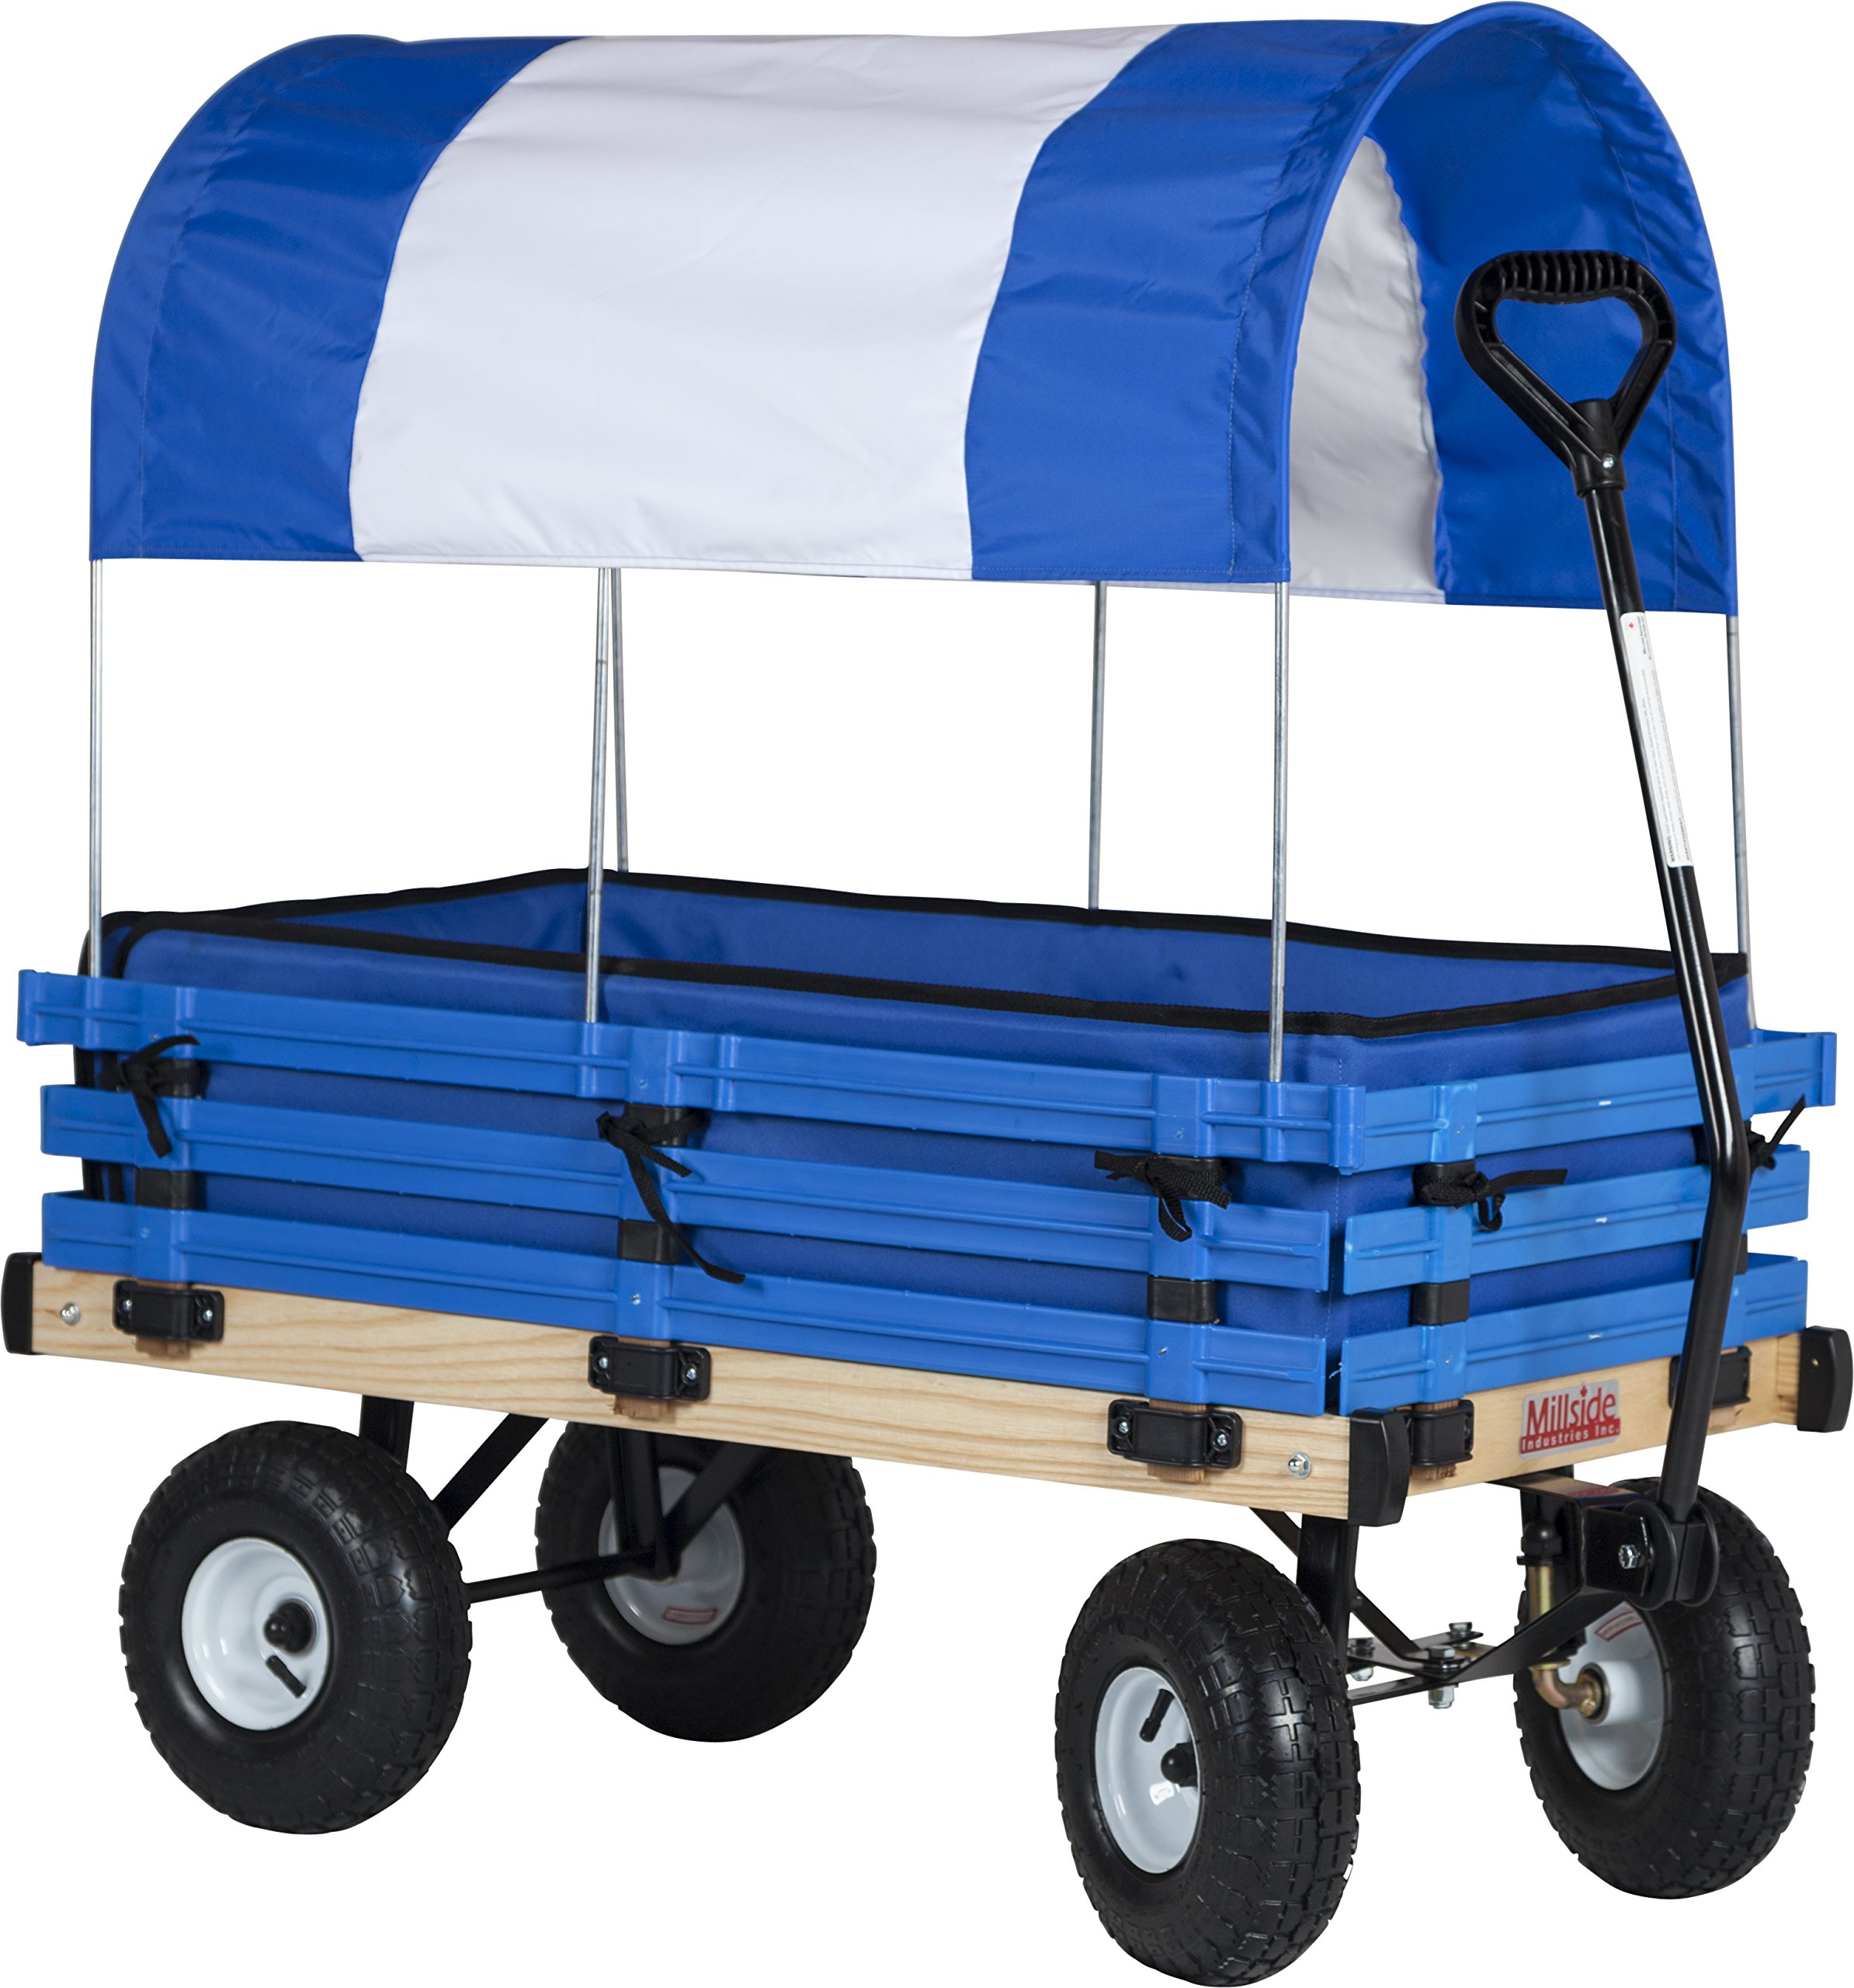 Millside Industries Classic Wood Wagon with Blue and White Canopy by Millside Industries